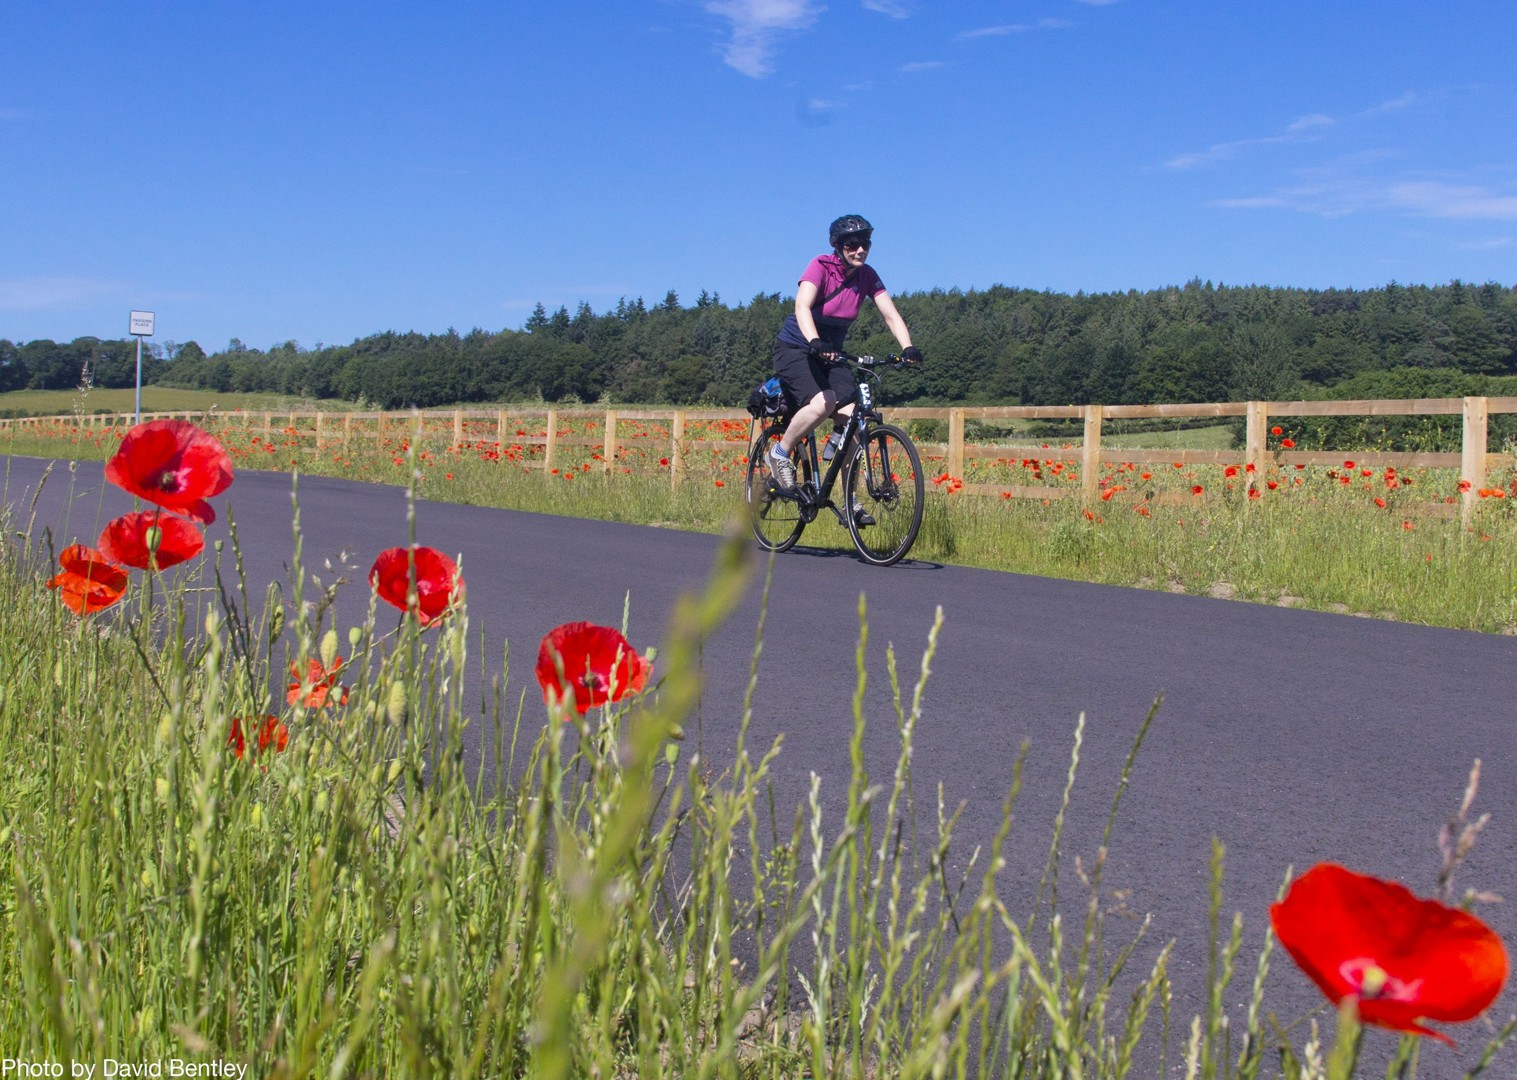 poppy-fields-hardians-cycleway-self-guided-countryside-riding.jpg - UK - Hadrian's Cycleway - Family Cycling